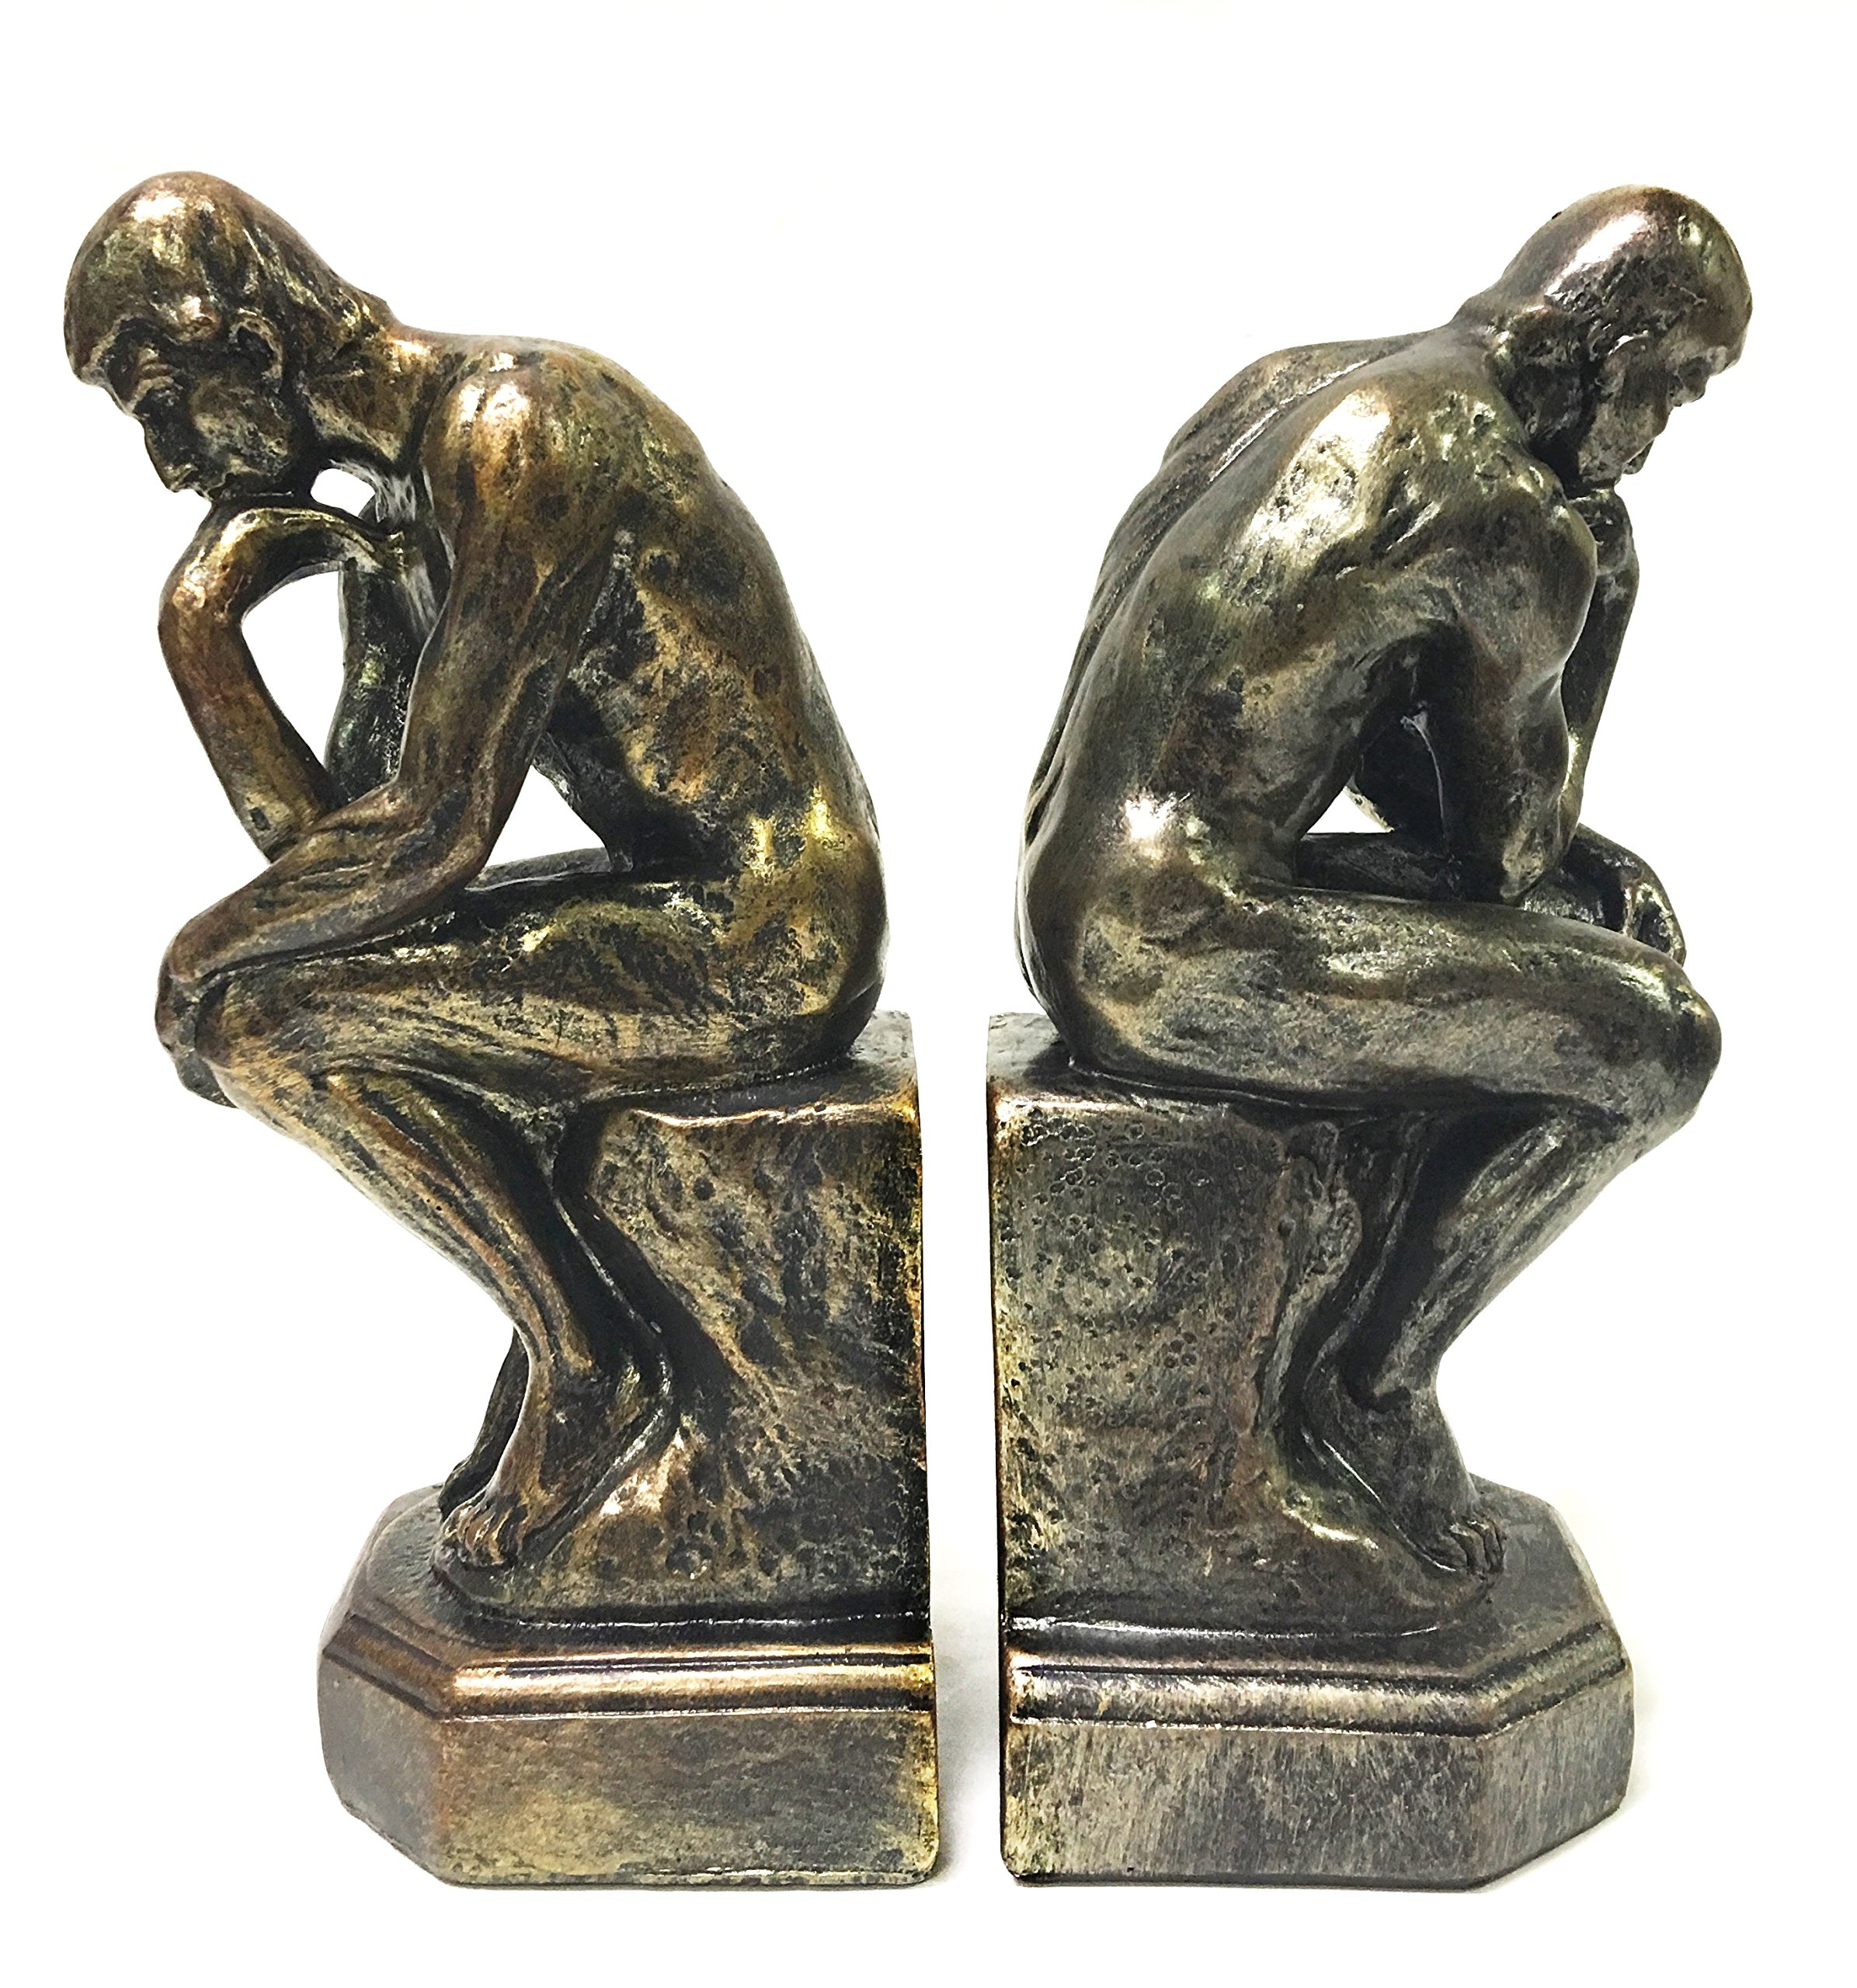 Bellaa 25594 Rodin The Thinker Statue Bookends Auguste Collectible Figurine by Bellaa